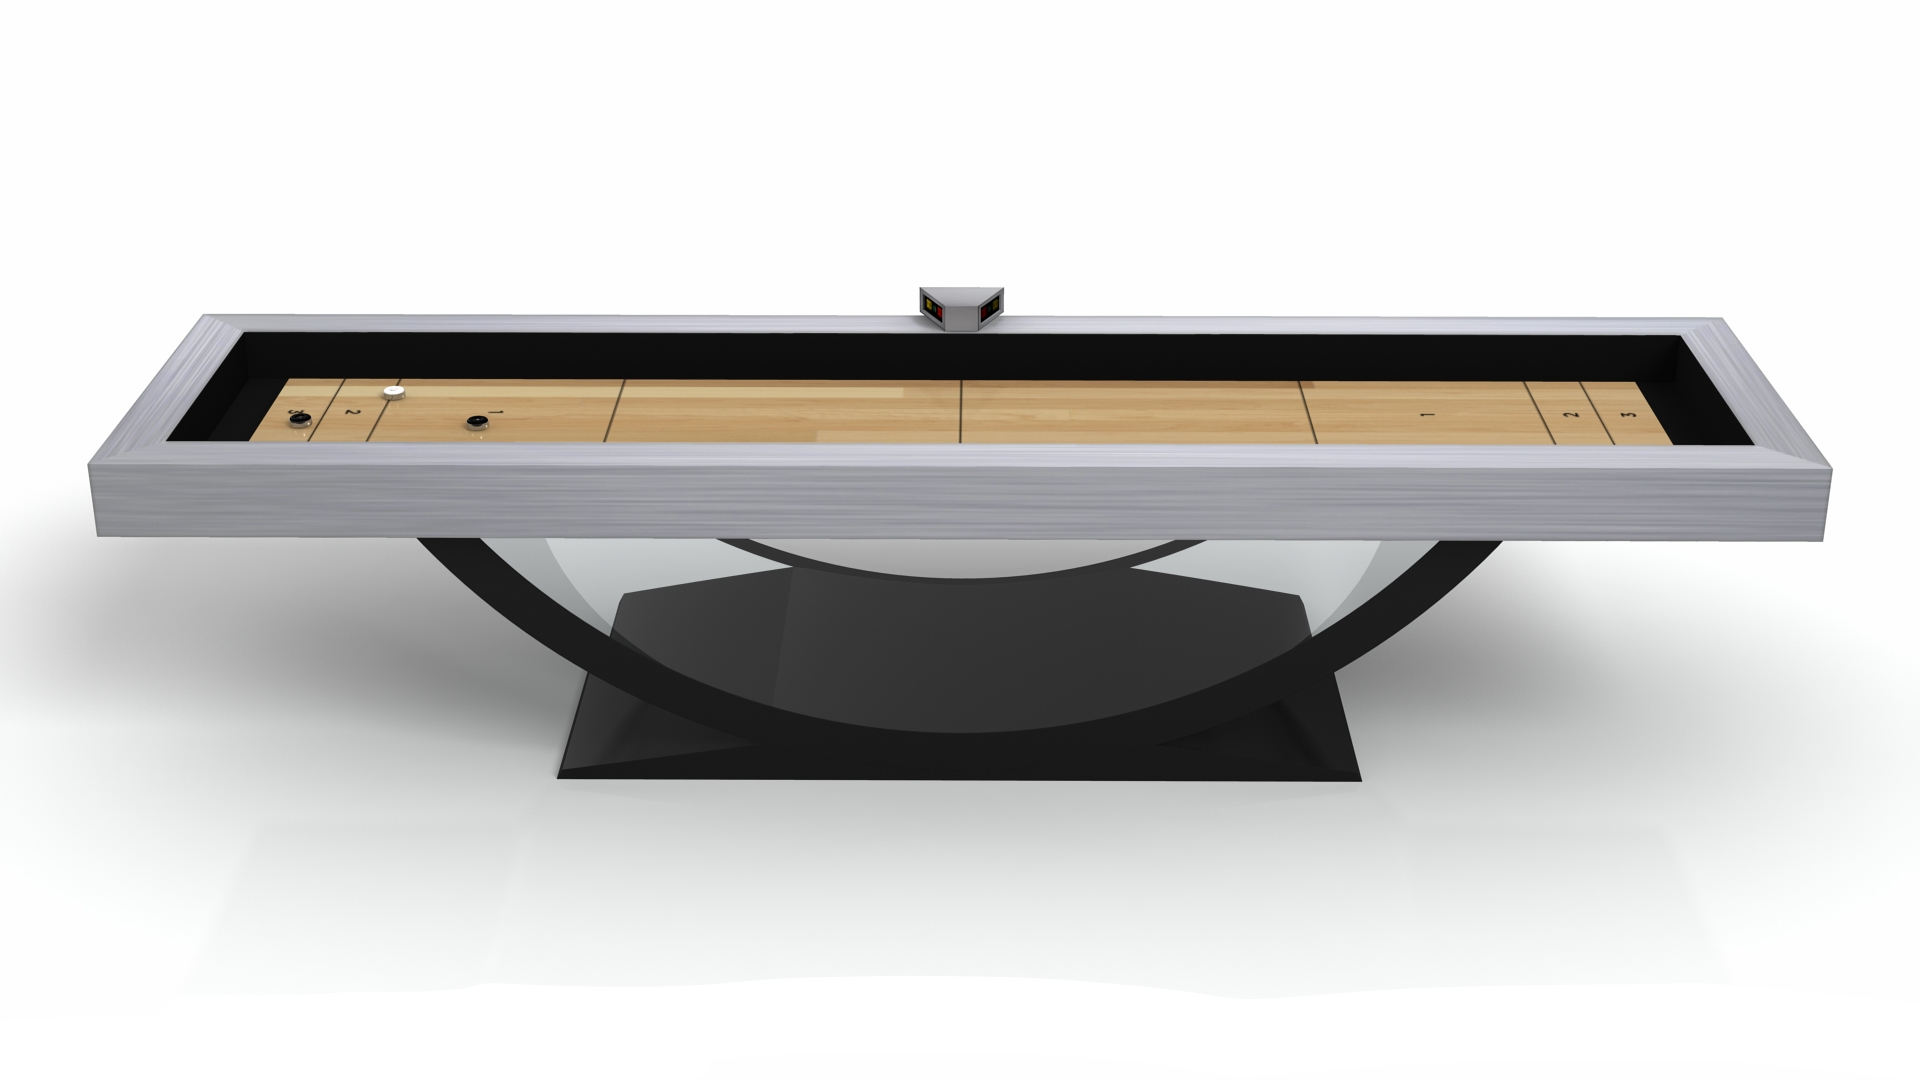 Theseus Shuffleboard in Acrylic and Brushed Aluminum